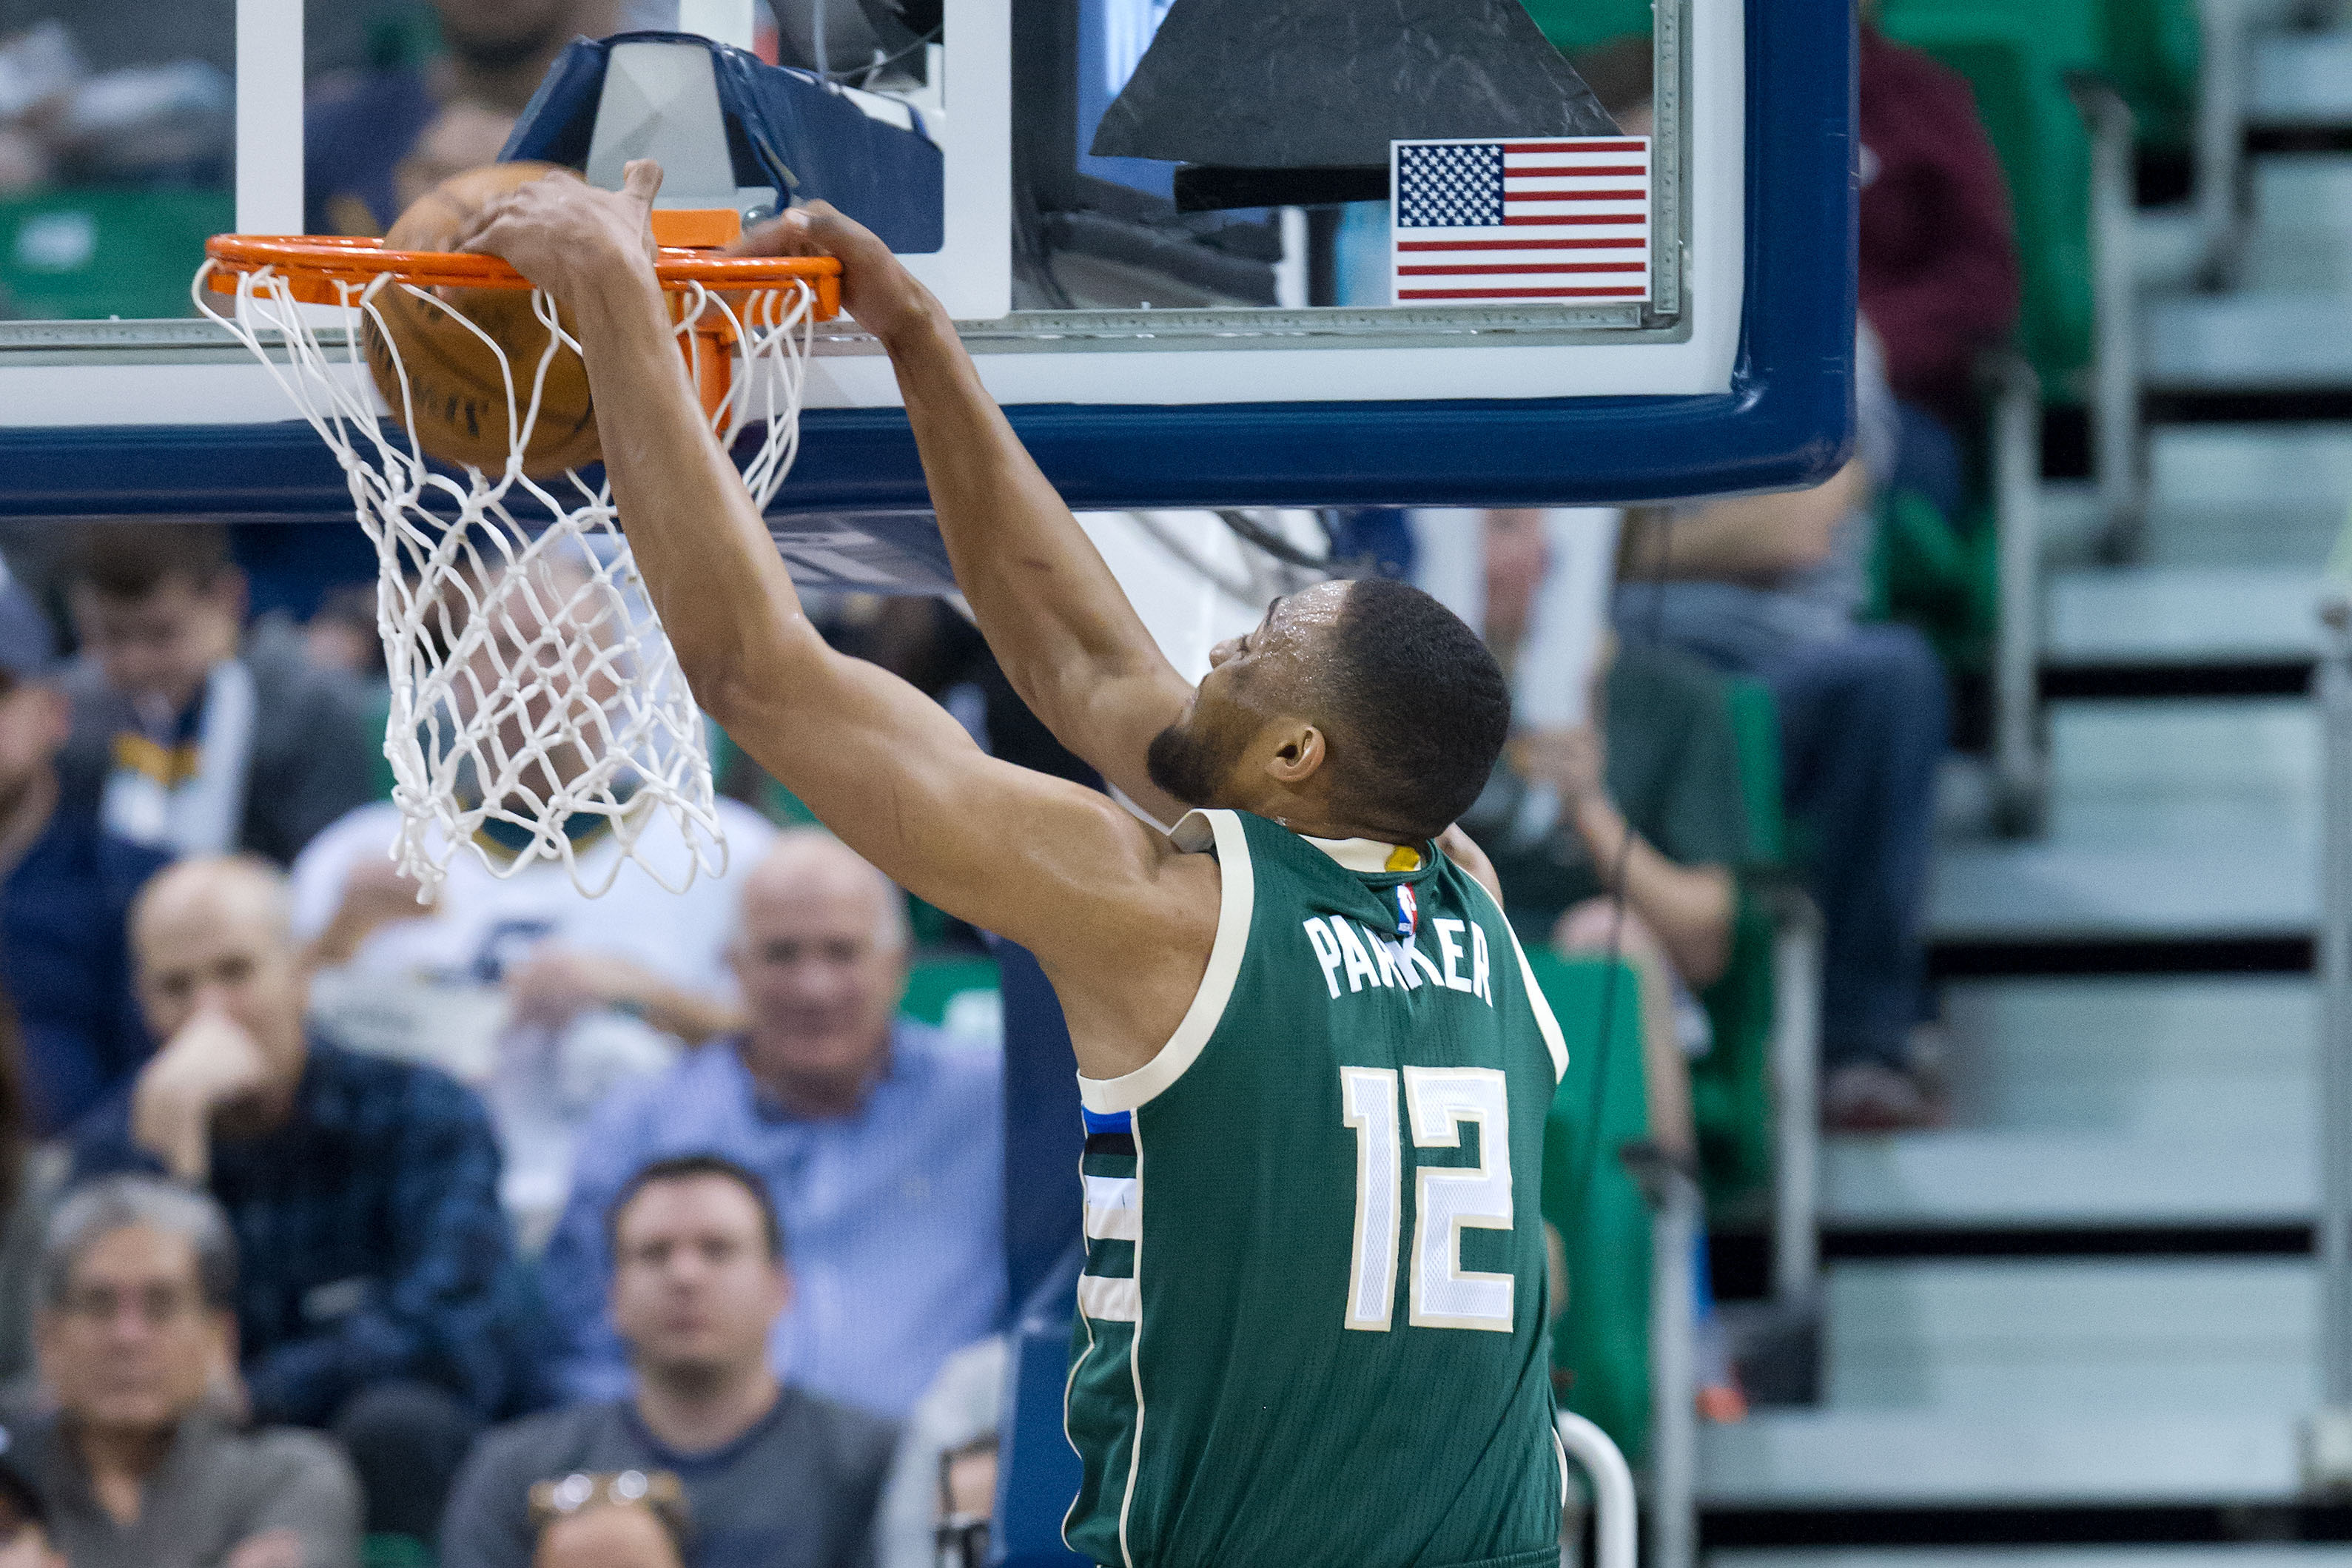 Feb 1, 2017; Salt Lake City, UT, USA; Milwaukee Bucks forward Jabari Parker (12) dunks the ball during the second half against the Utah Jazz at Vivint Smart Home Arena. The Jazz won 104-88. Mandatory Credit: Russ Isabella-USA TODAY Sports